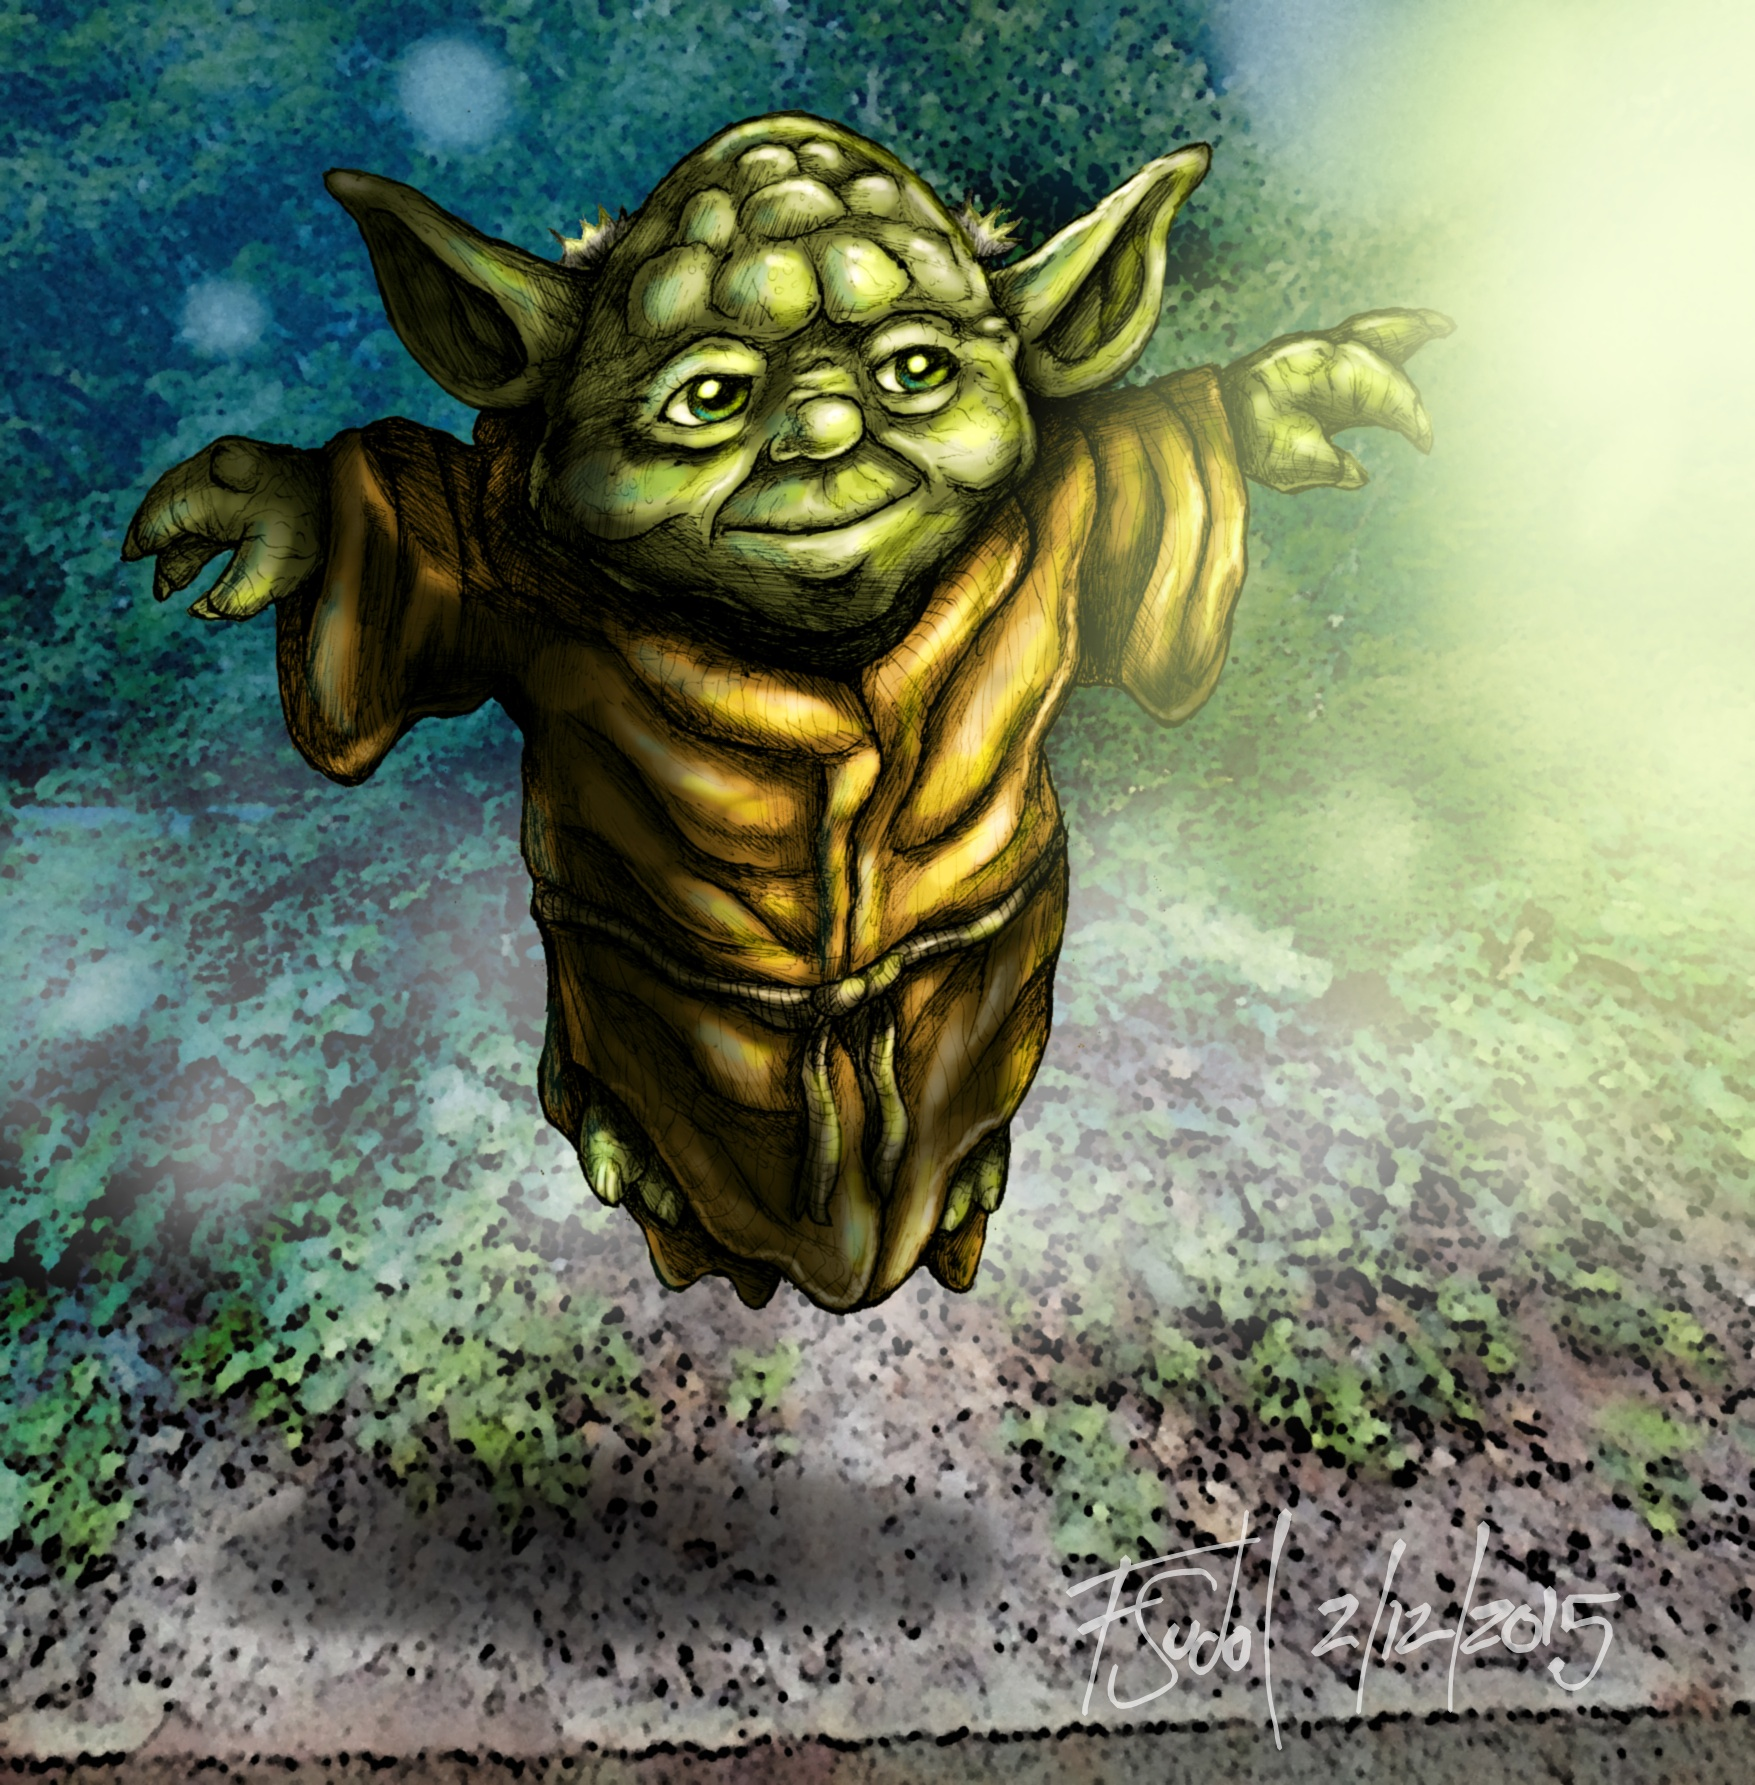 Yoda using the Force to Float